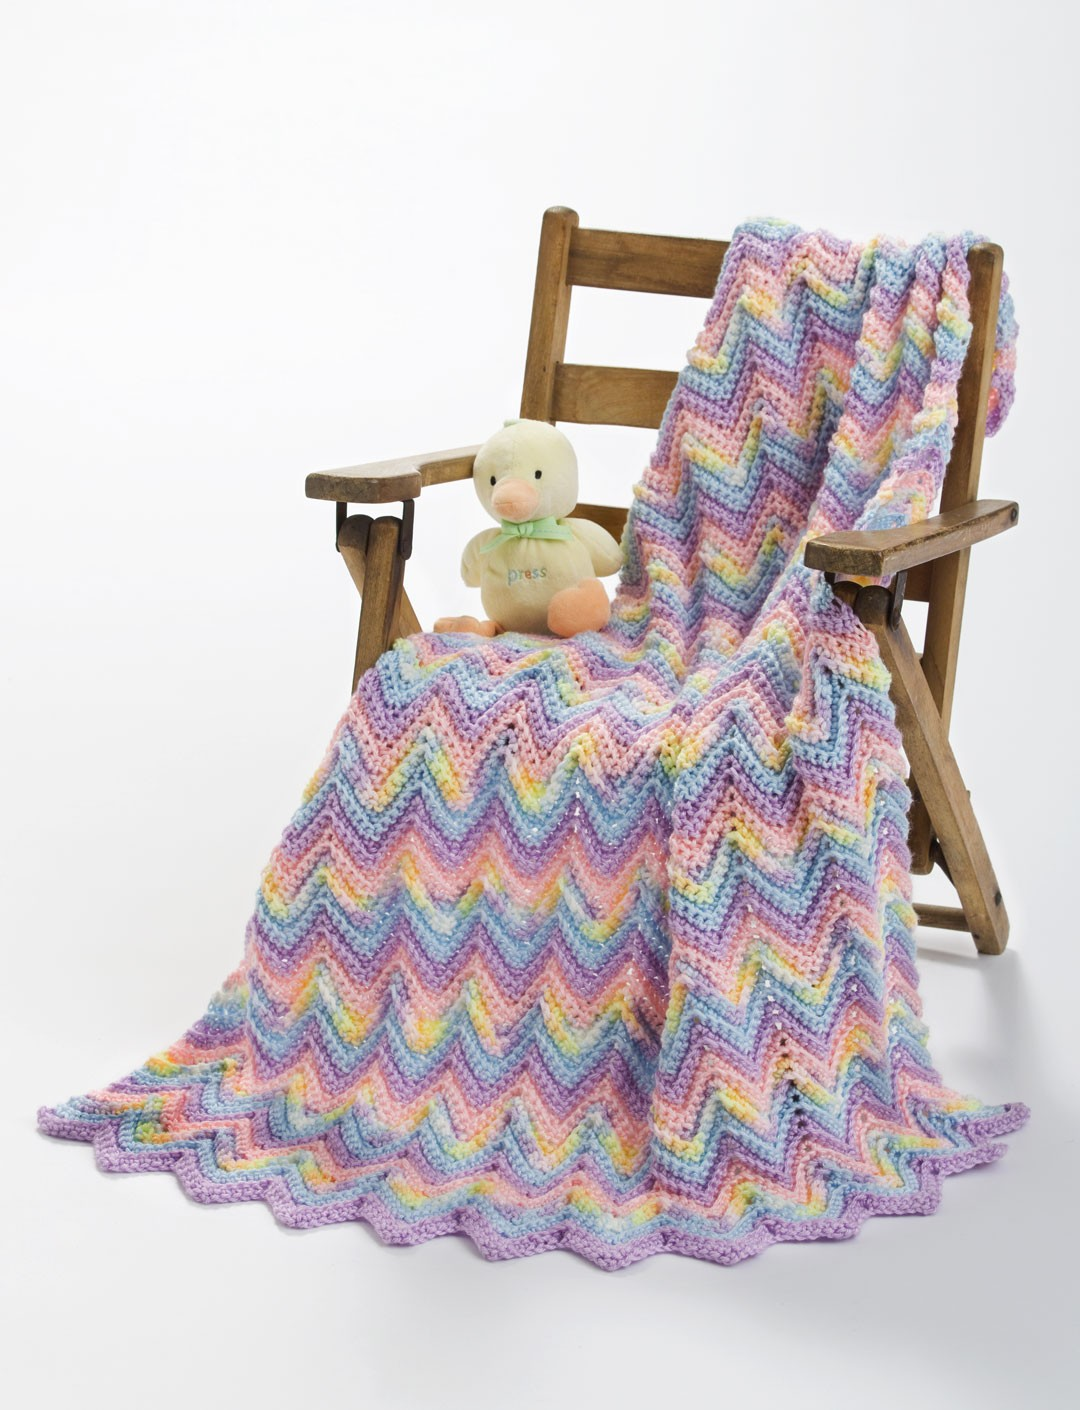 Crochet Or Knit : Caron Knit or Crochet Ripple Baby Blanket, Crochet Pattern ...